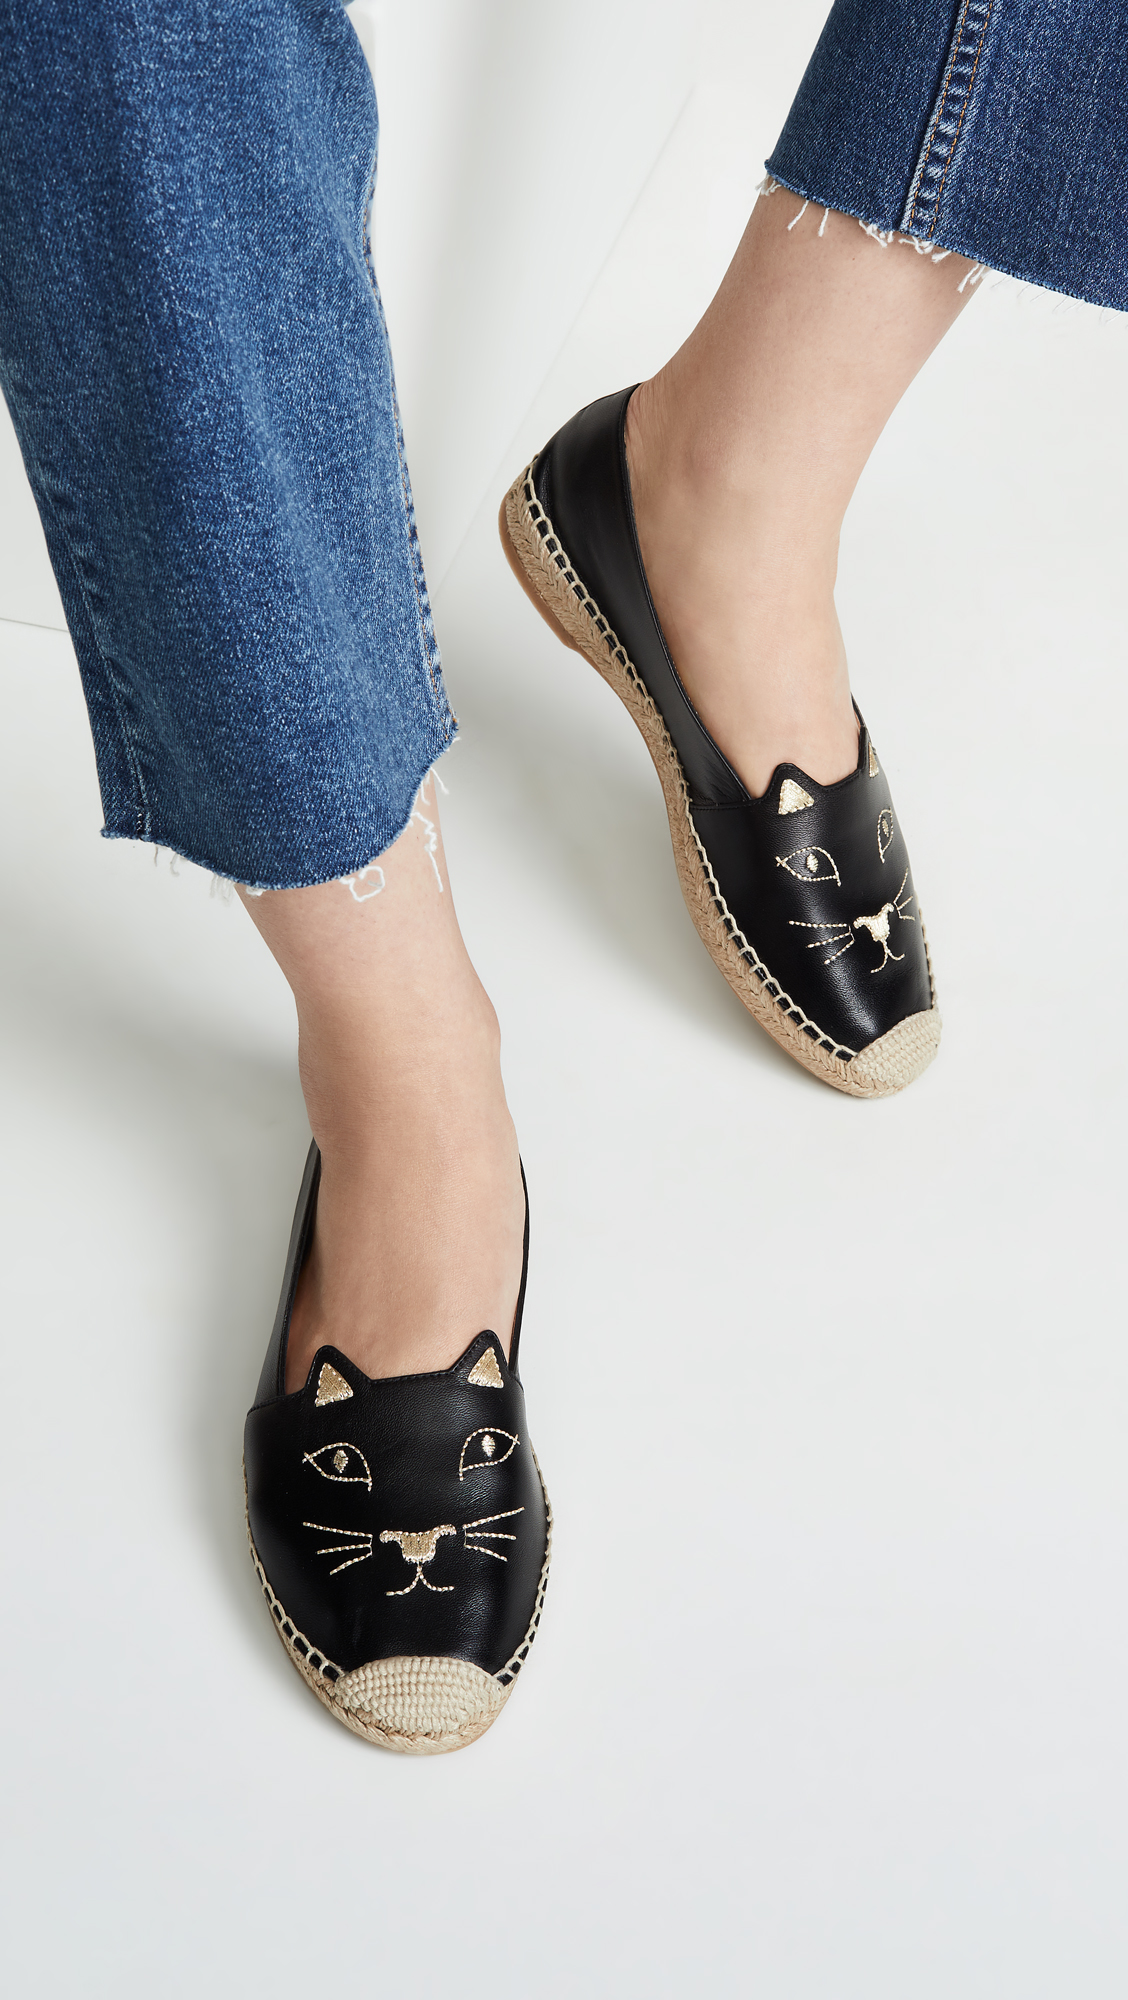 Kitty Cat Black Leather Espadrilles